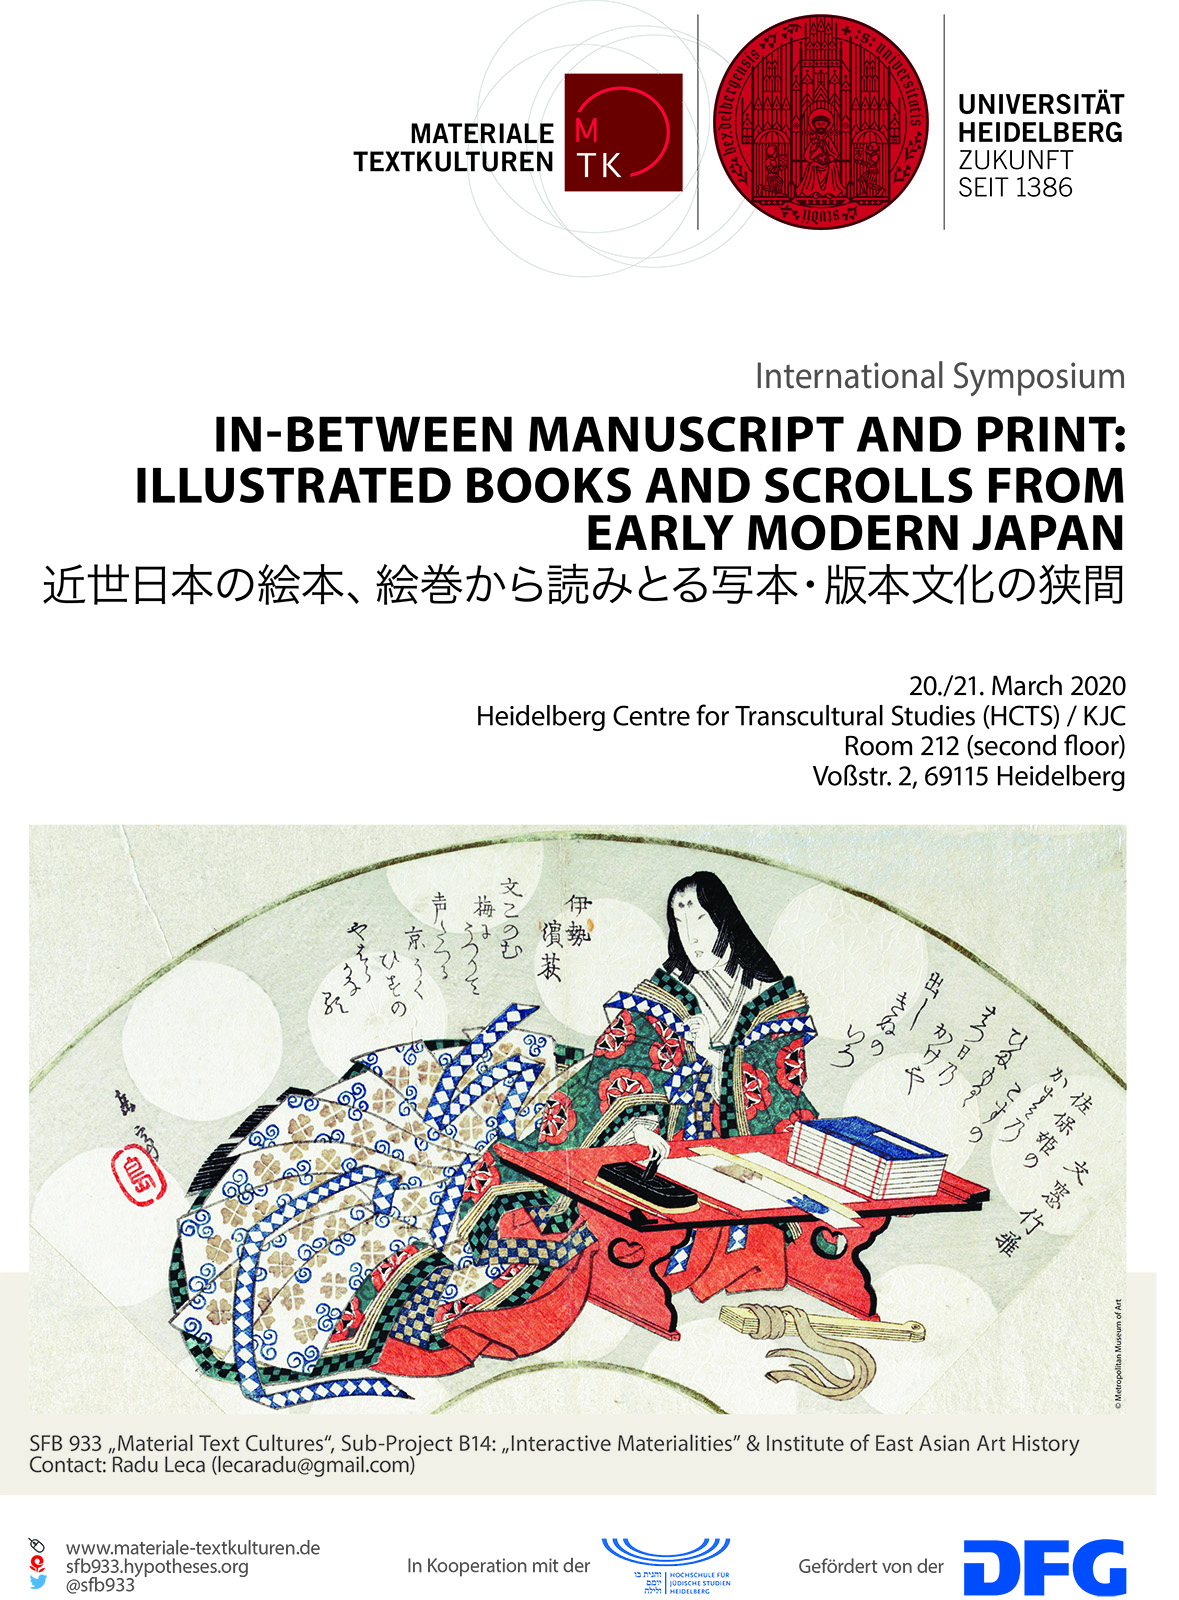 International Symposium: In-between Manuscript and Print